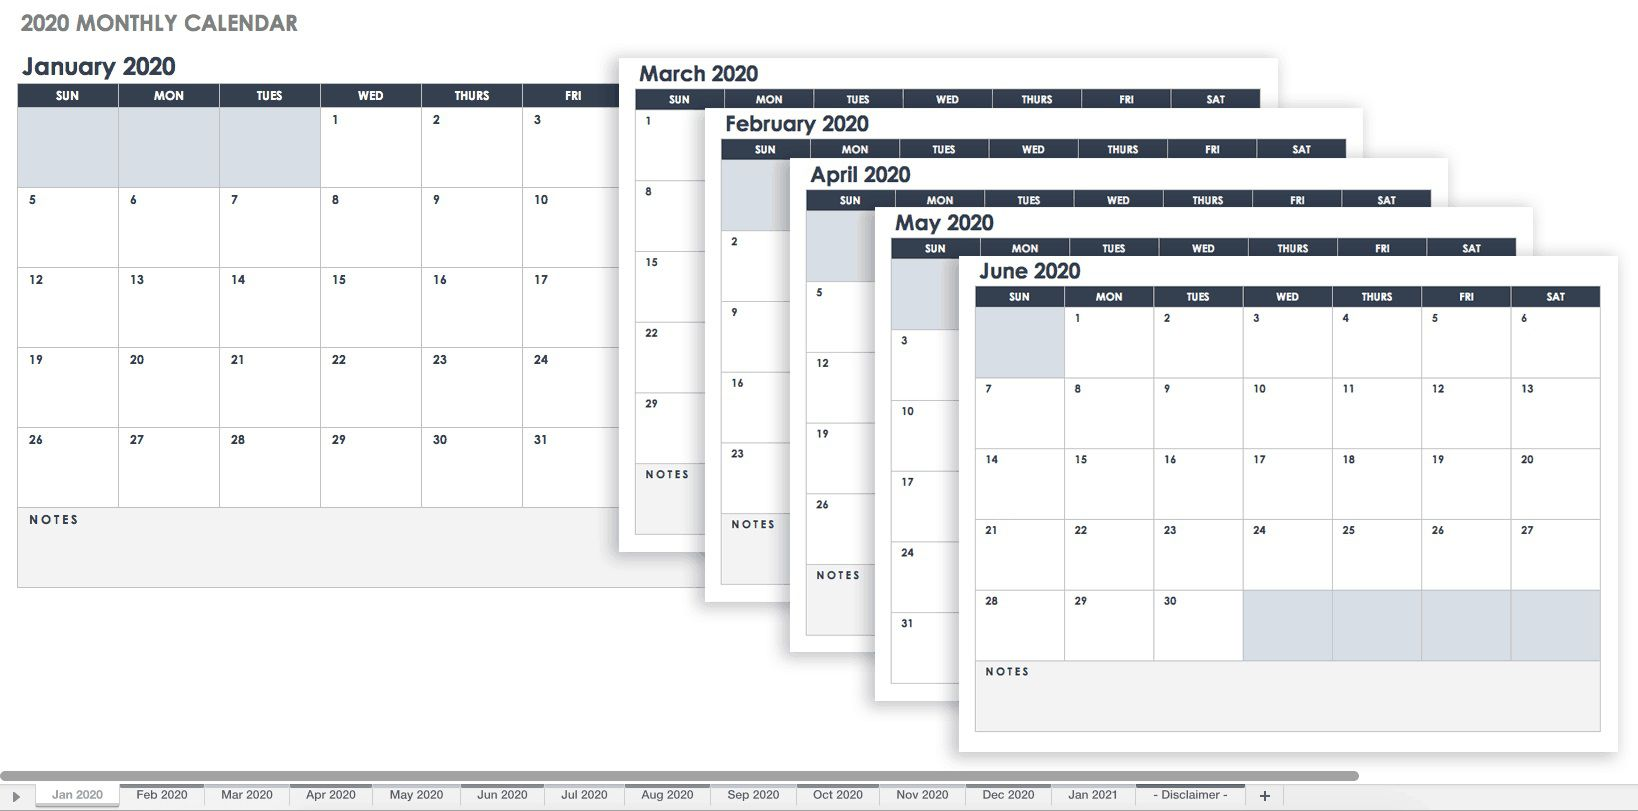 003 Singular Google Sheet Calendar Template 2020 Highest Quality  Monthly And 2021 2020-21Full